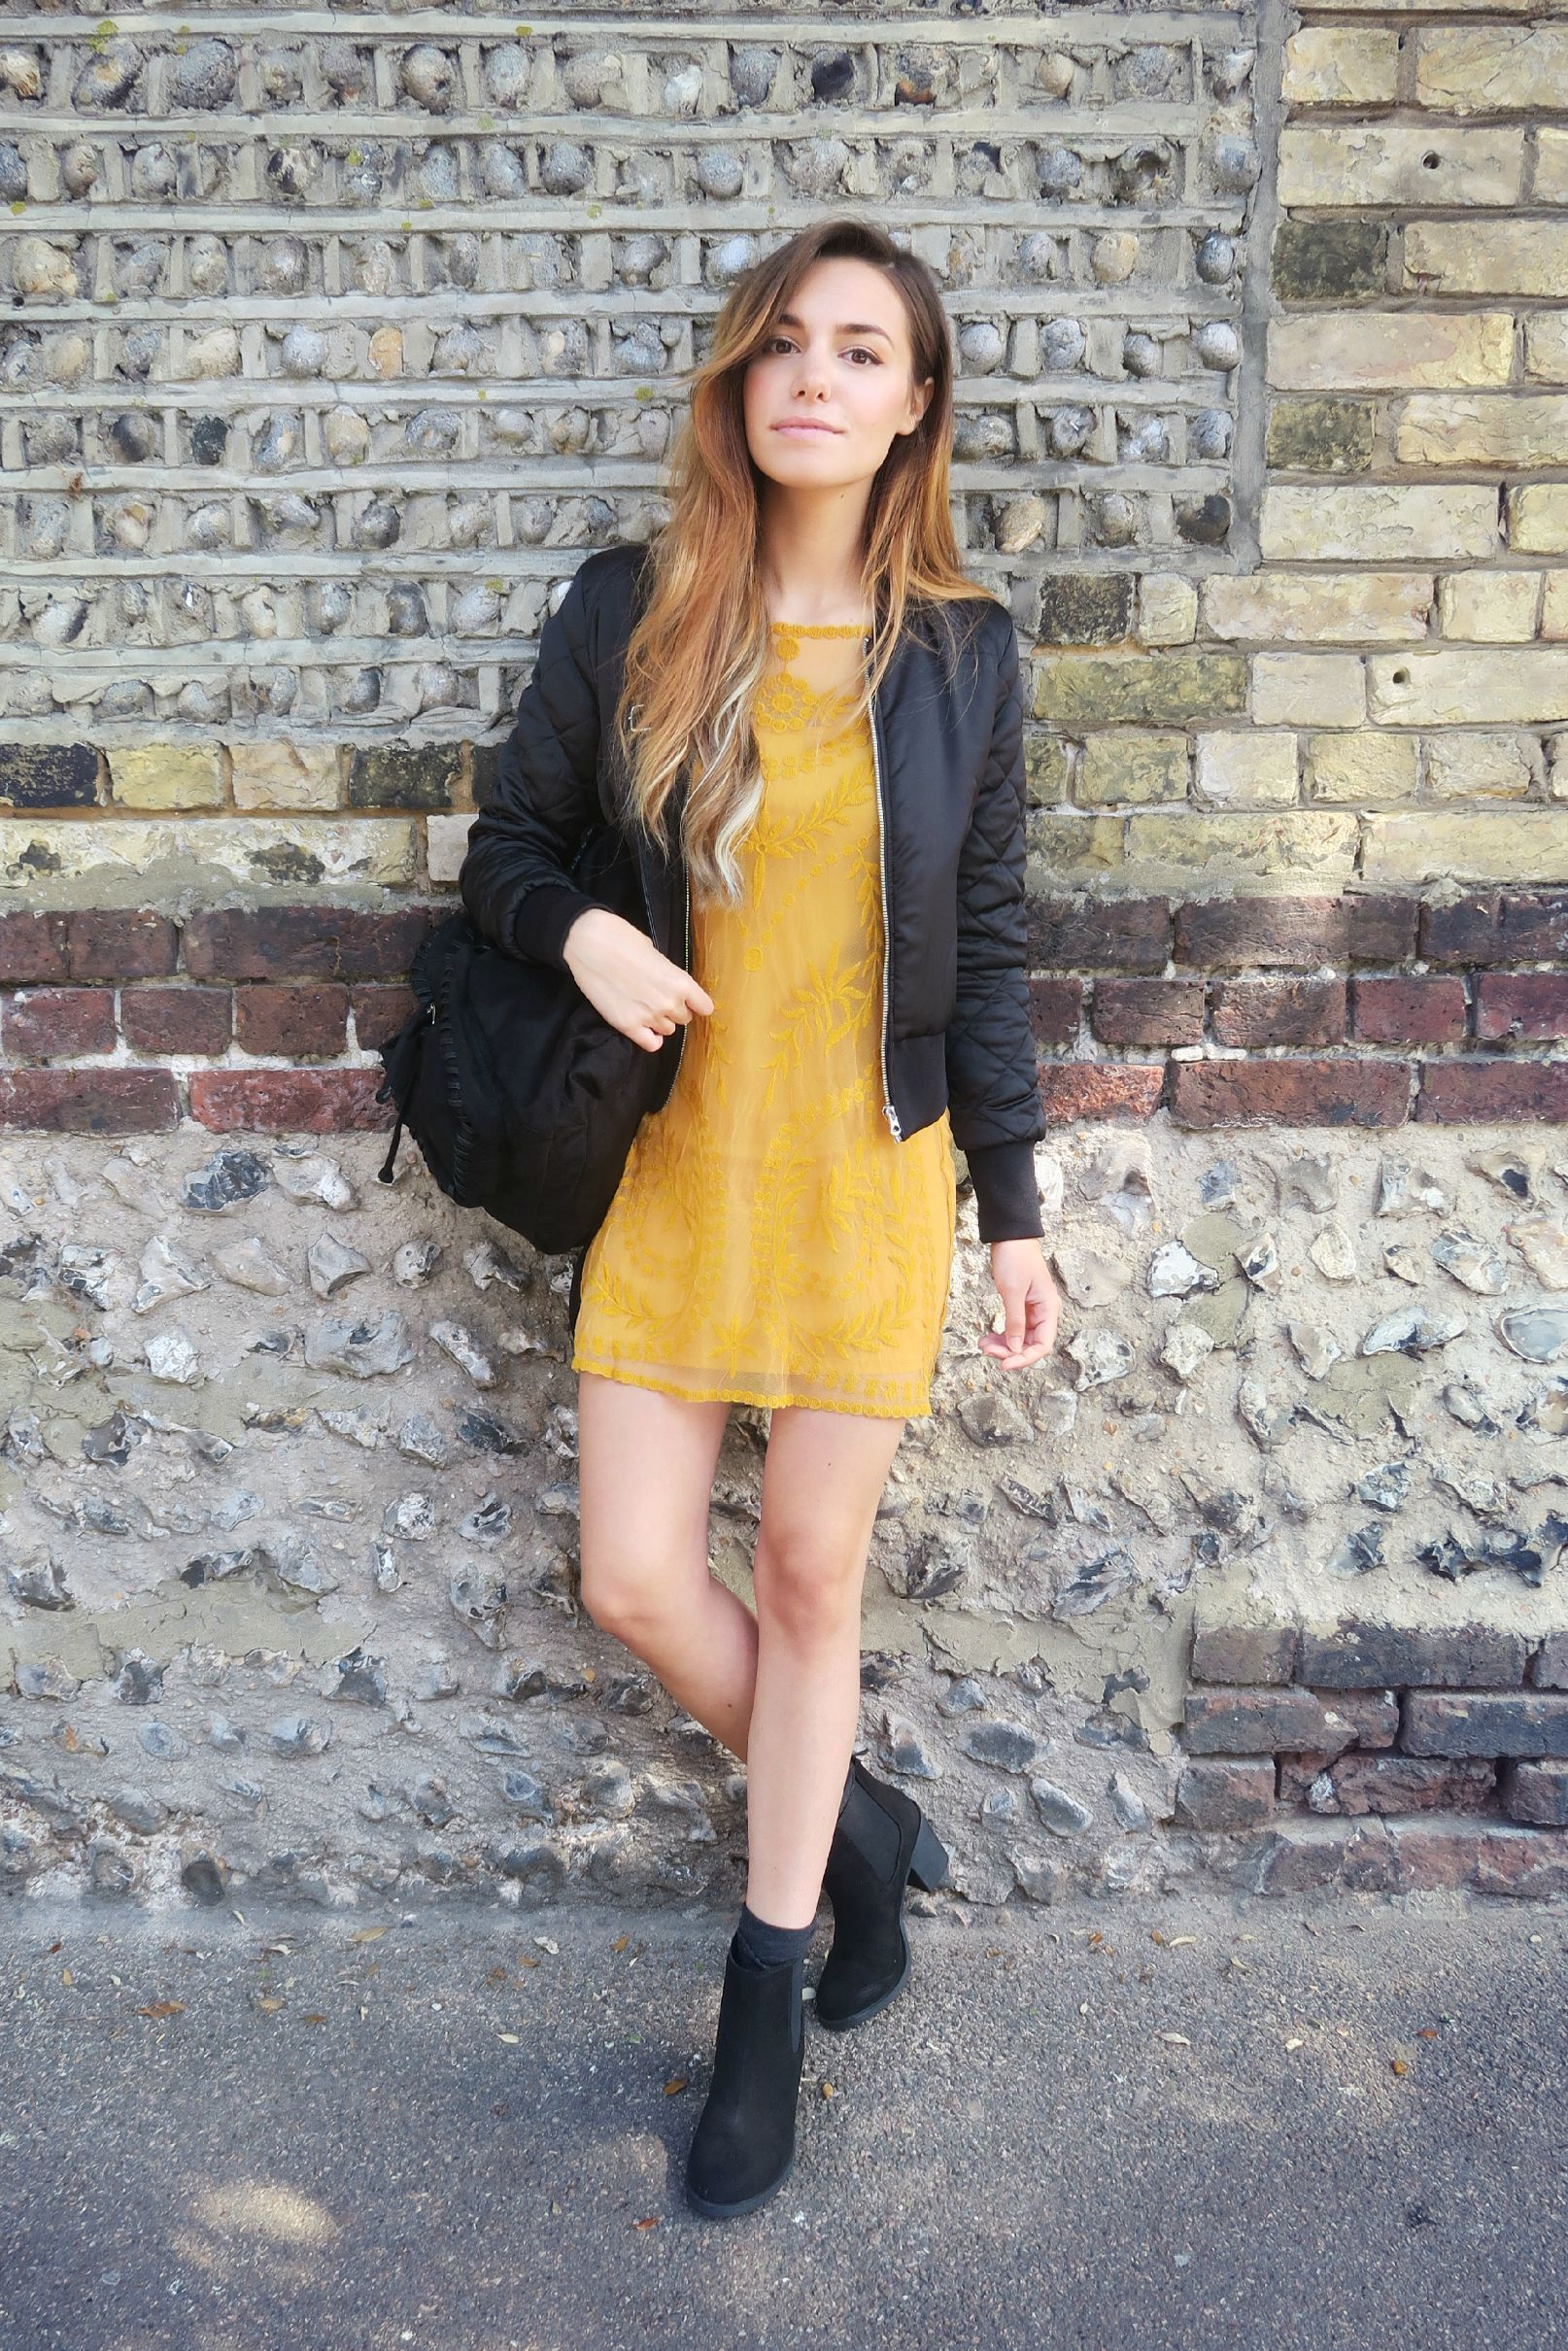 Marzia Bisognin - or maybe you know her as YouTube's ...